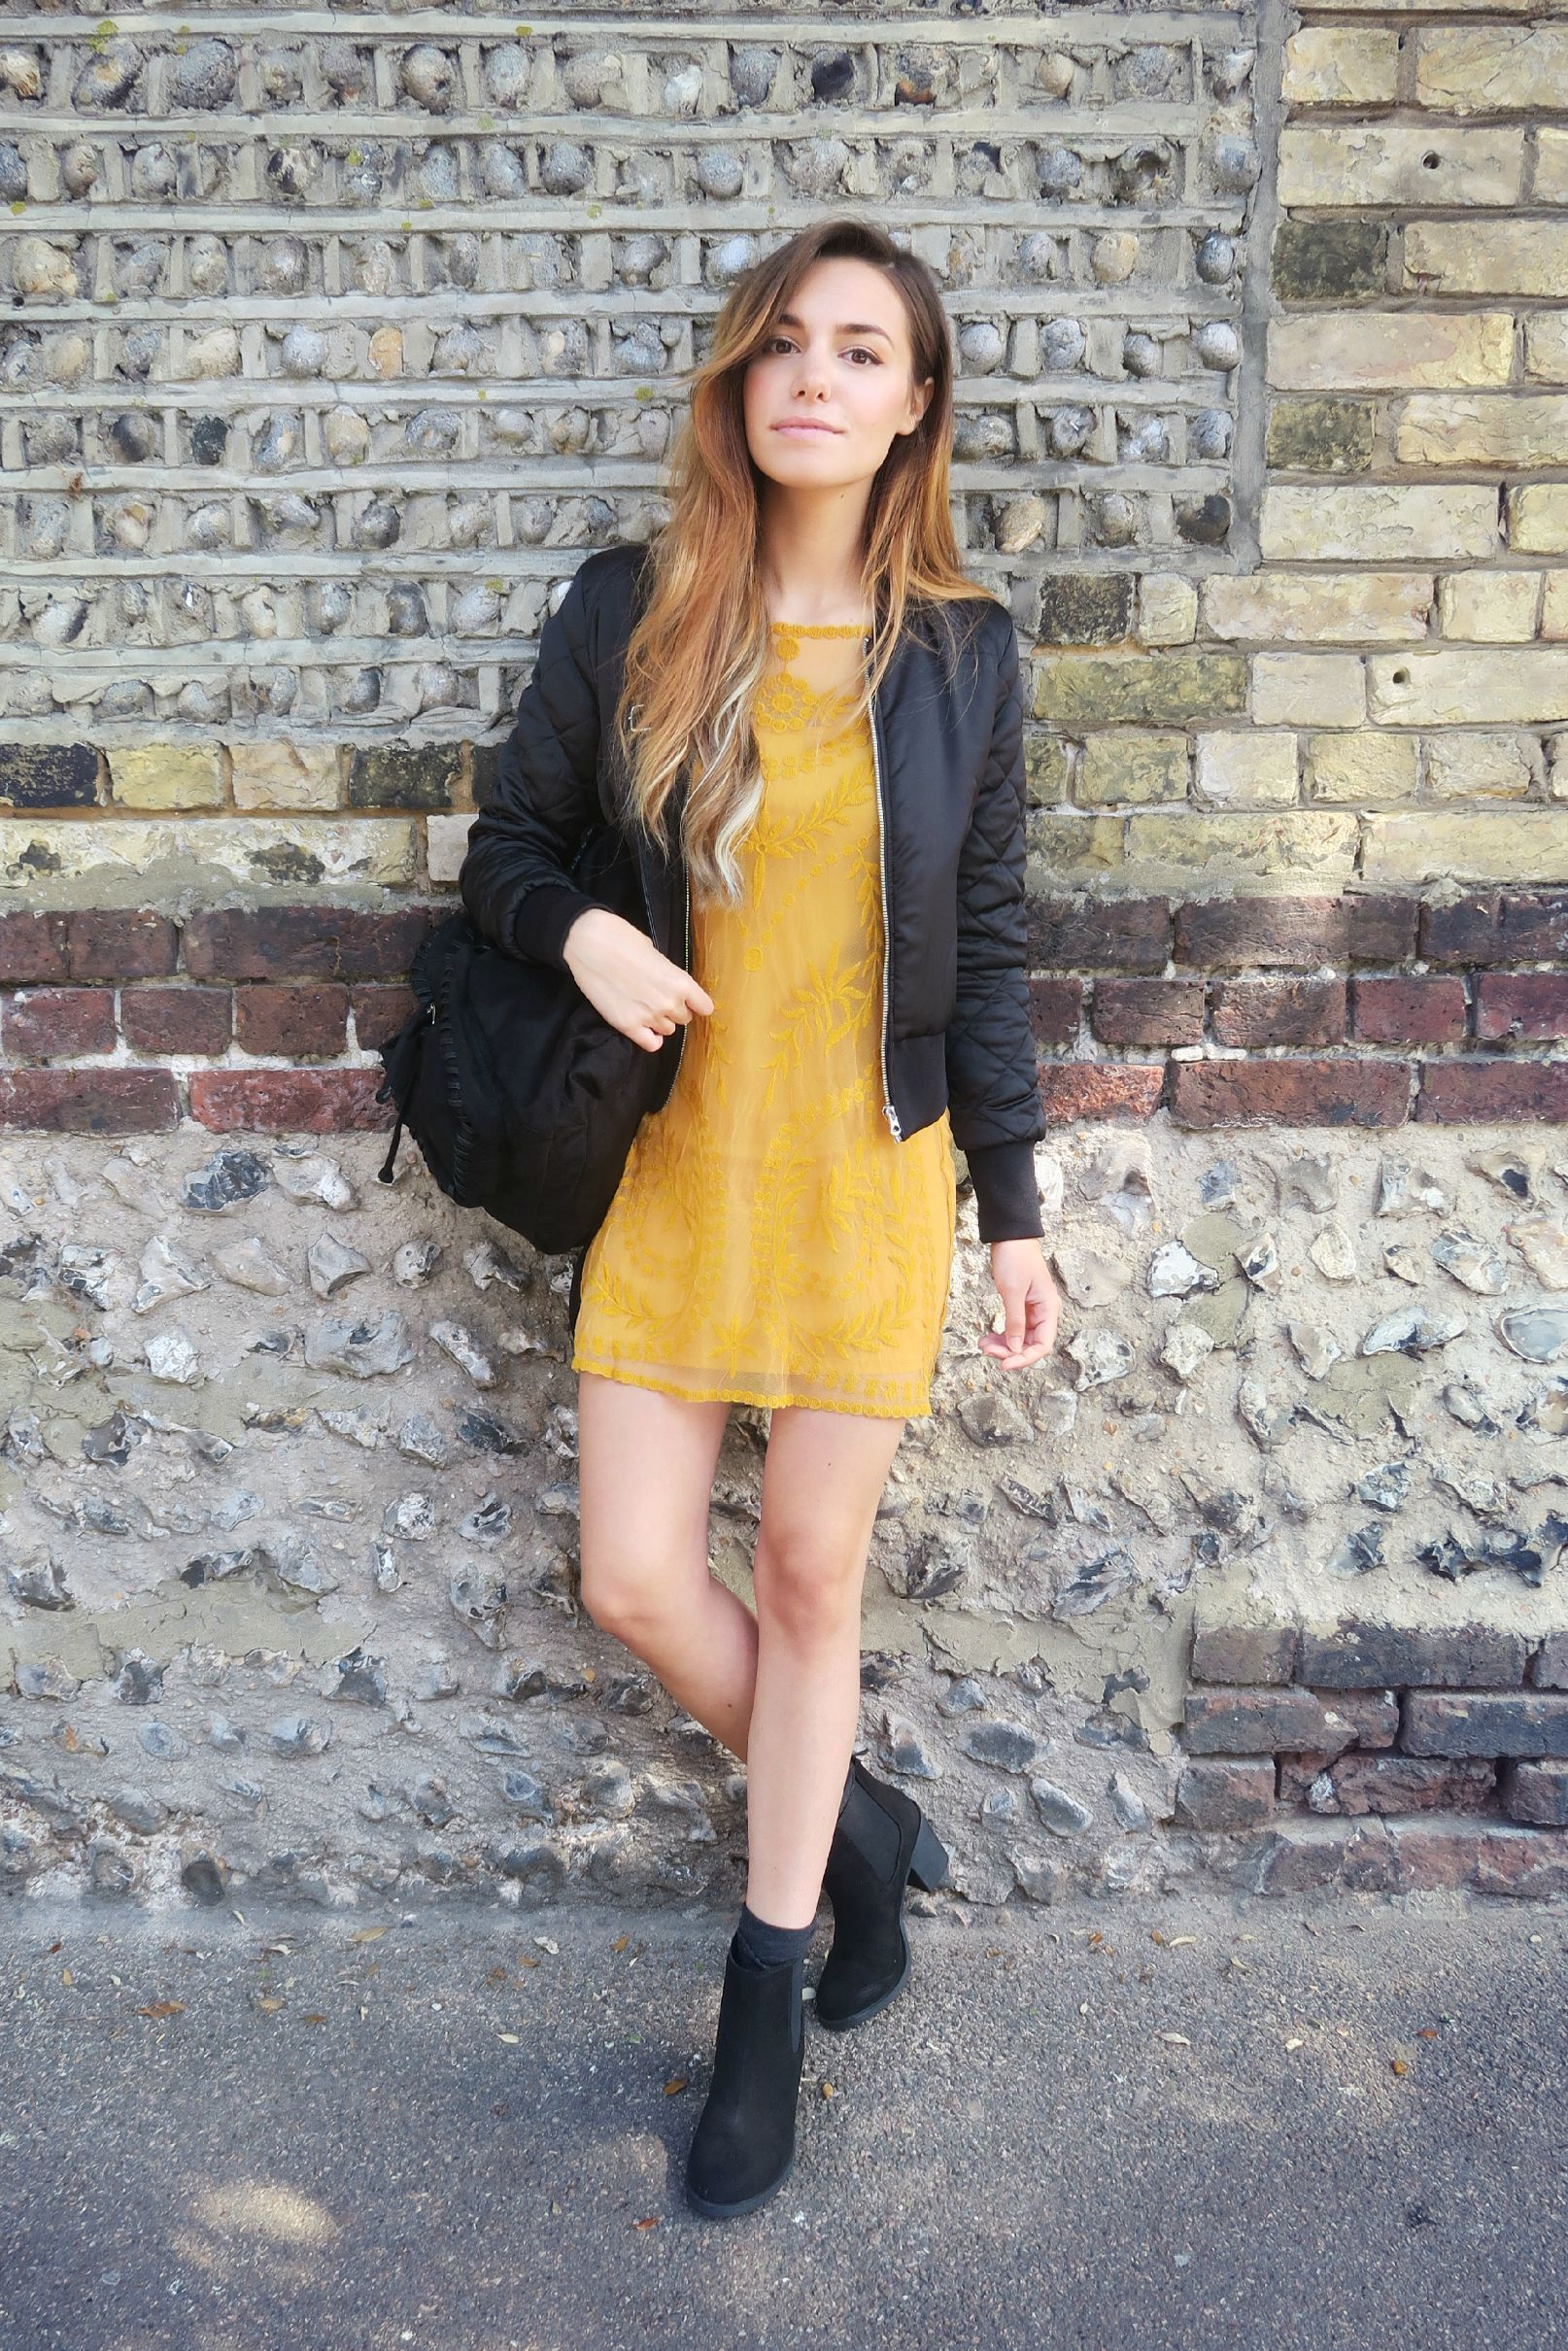 Marzia Bisognin - or maybe you know her as YouTube's ...